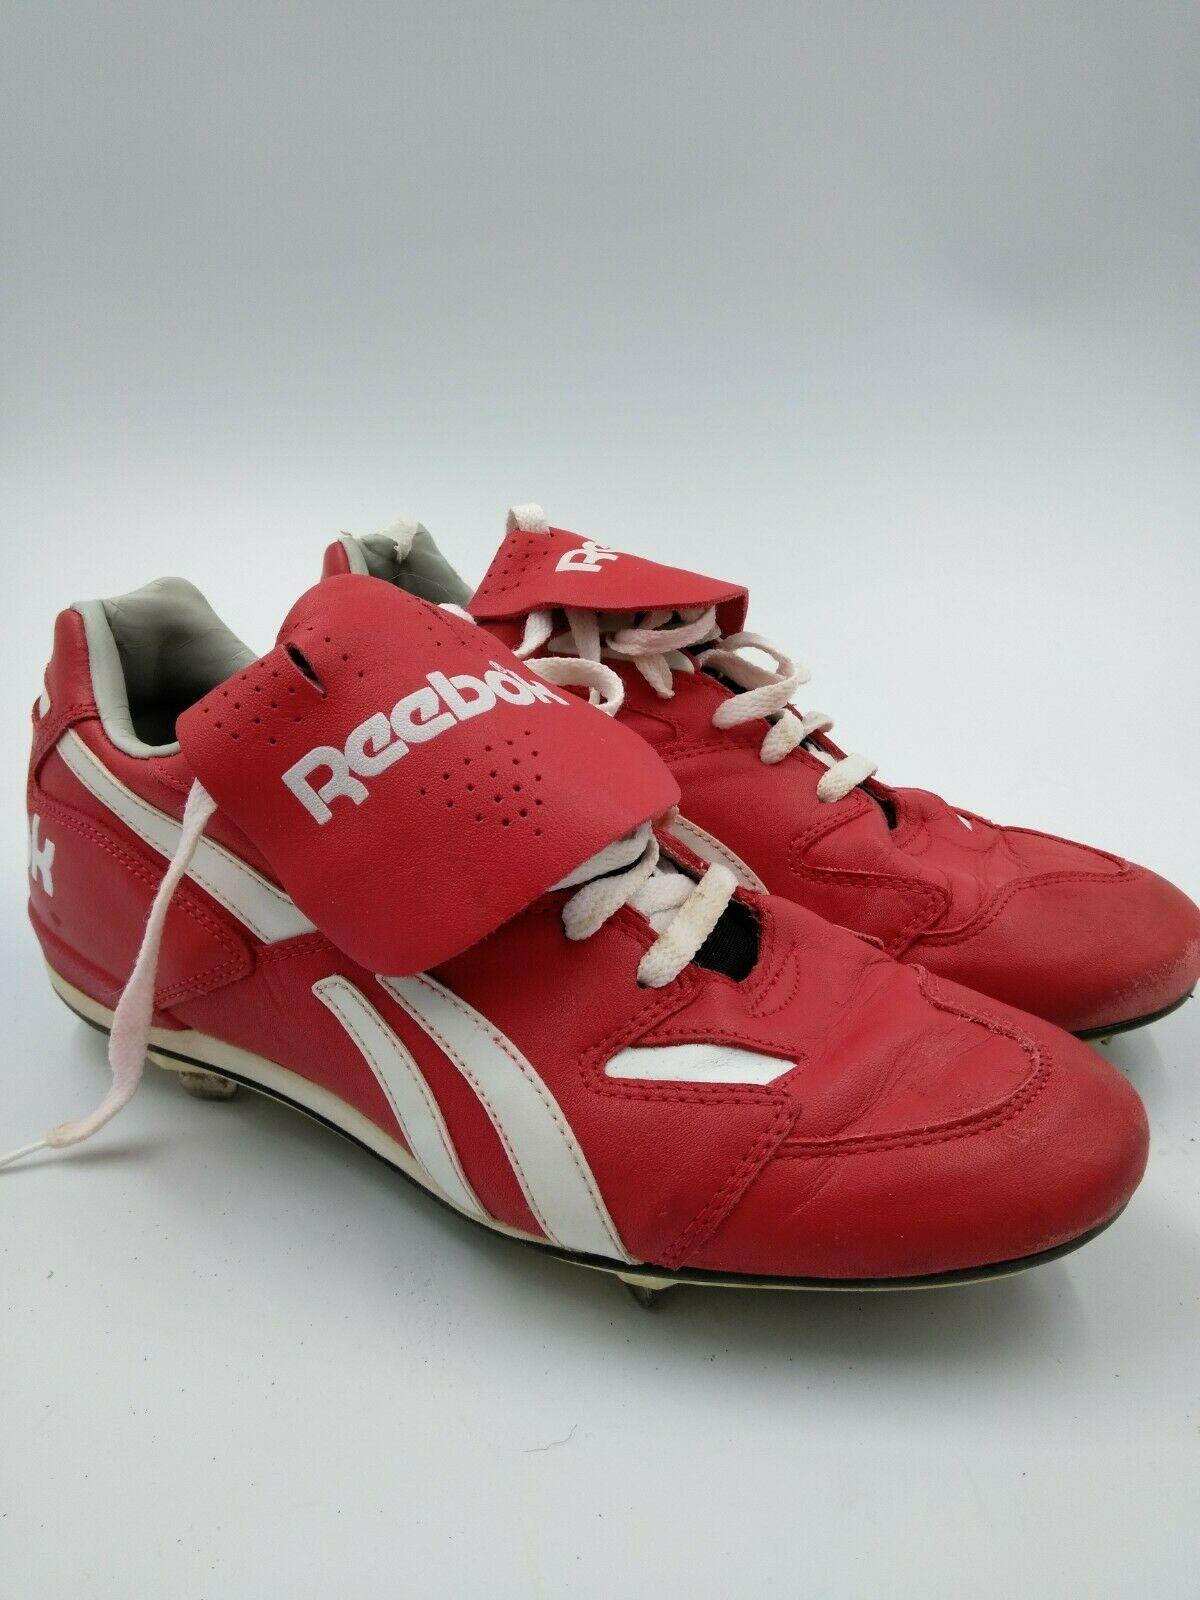 Men's Red and White Reebok Metal Cleats Size 9.5 baseball - vintage style